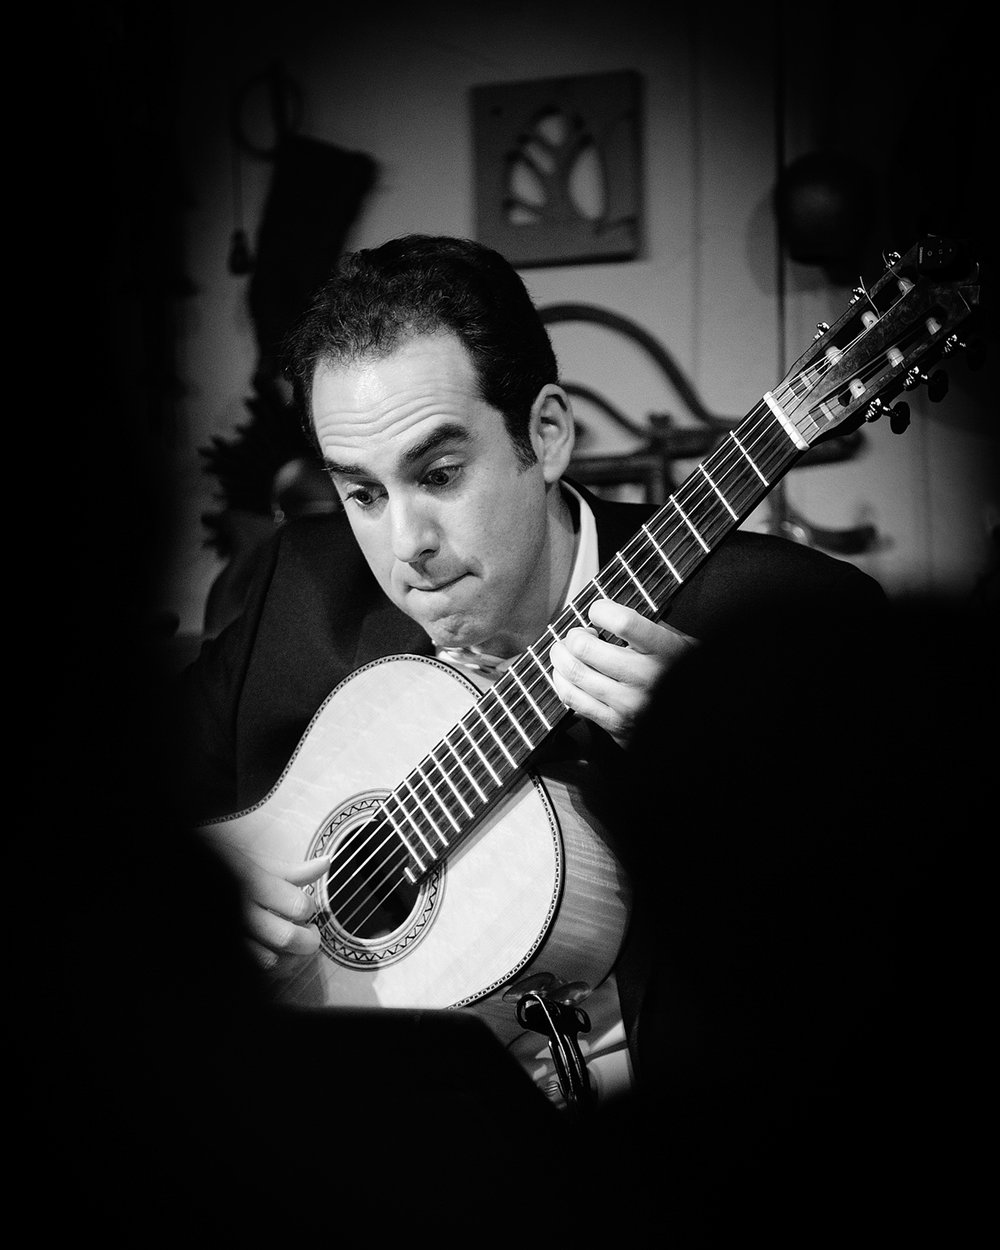 """""""An incredible photographer. First class in every respect. I would recommend him any day or minute! He transformed my image!"""" - Adam Levin, Classical Guitarist and NAXOS Recording Artist"""